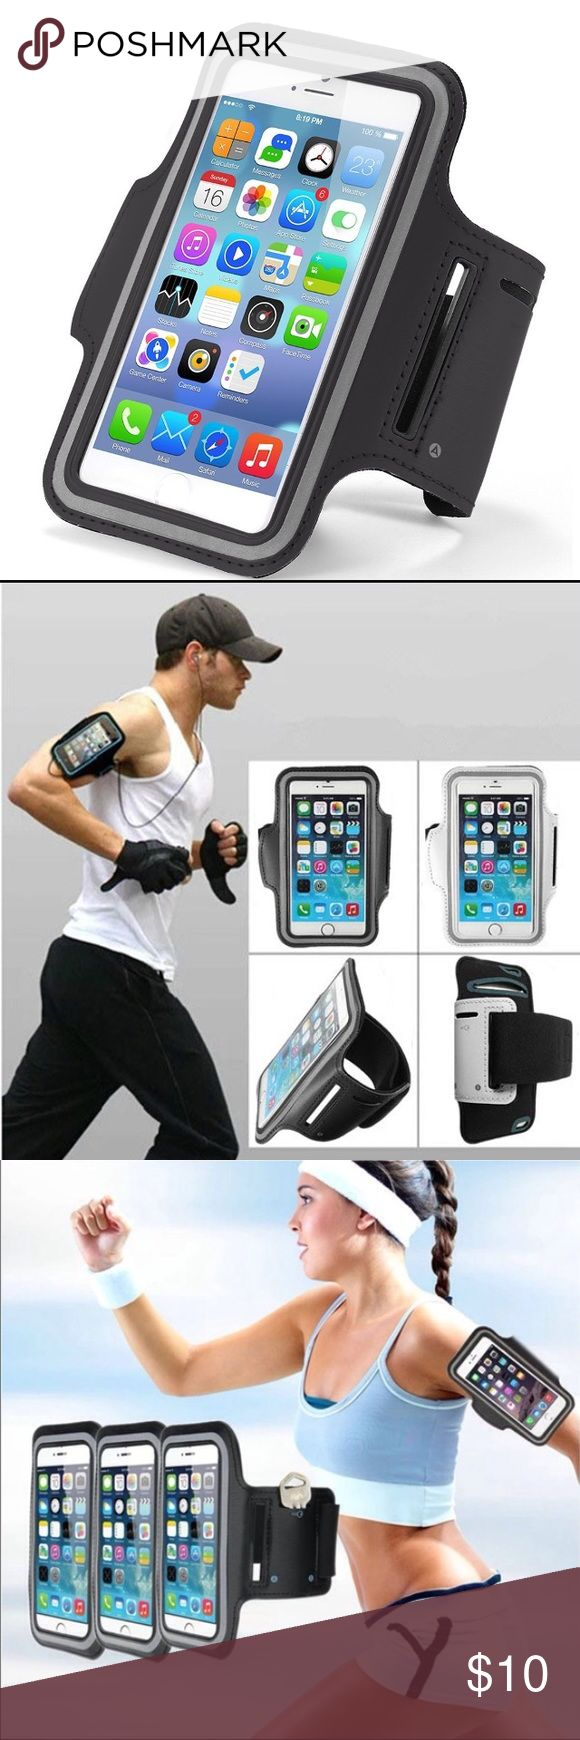 i7+/6+/6s+ High quality gym and sport armband case i7+/6+/6s+ High quality gym and sport armband case Listing is Durable water-proof, sweat-proof Sport and Gym Armband case for iPhone 7 Plus & 6 plus  & 6s Plus   This is unisex sport accessory for Women & Men indoor Gym and Outdoor sport smart phone Case holder.  High quality Nylon Bag Cover Holder specially for iPhone 7 Plus and 6 Plus and 6s Plus  Fashion color Designed for your convenience. Color: Black  Order will ship within 24 hours…